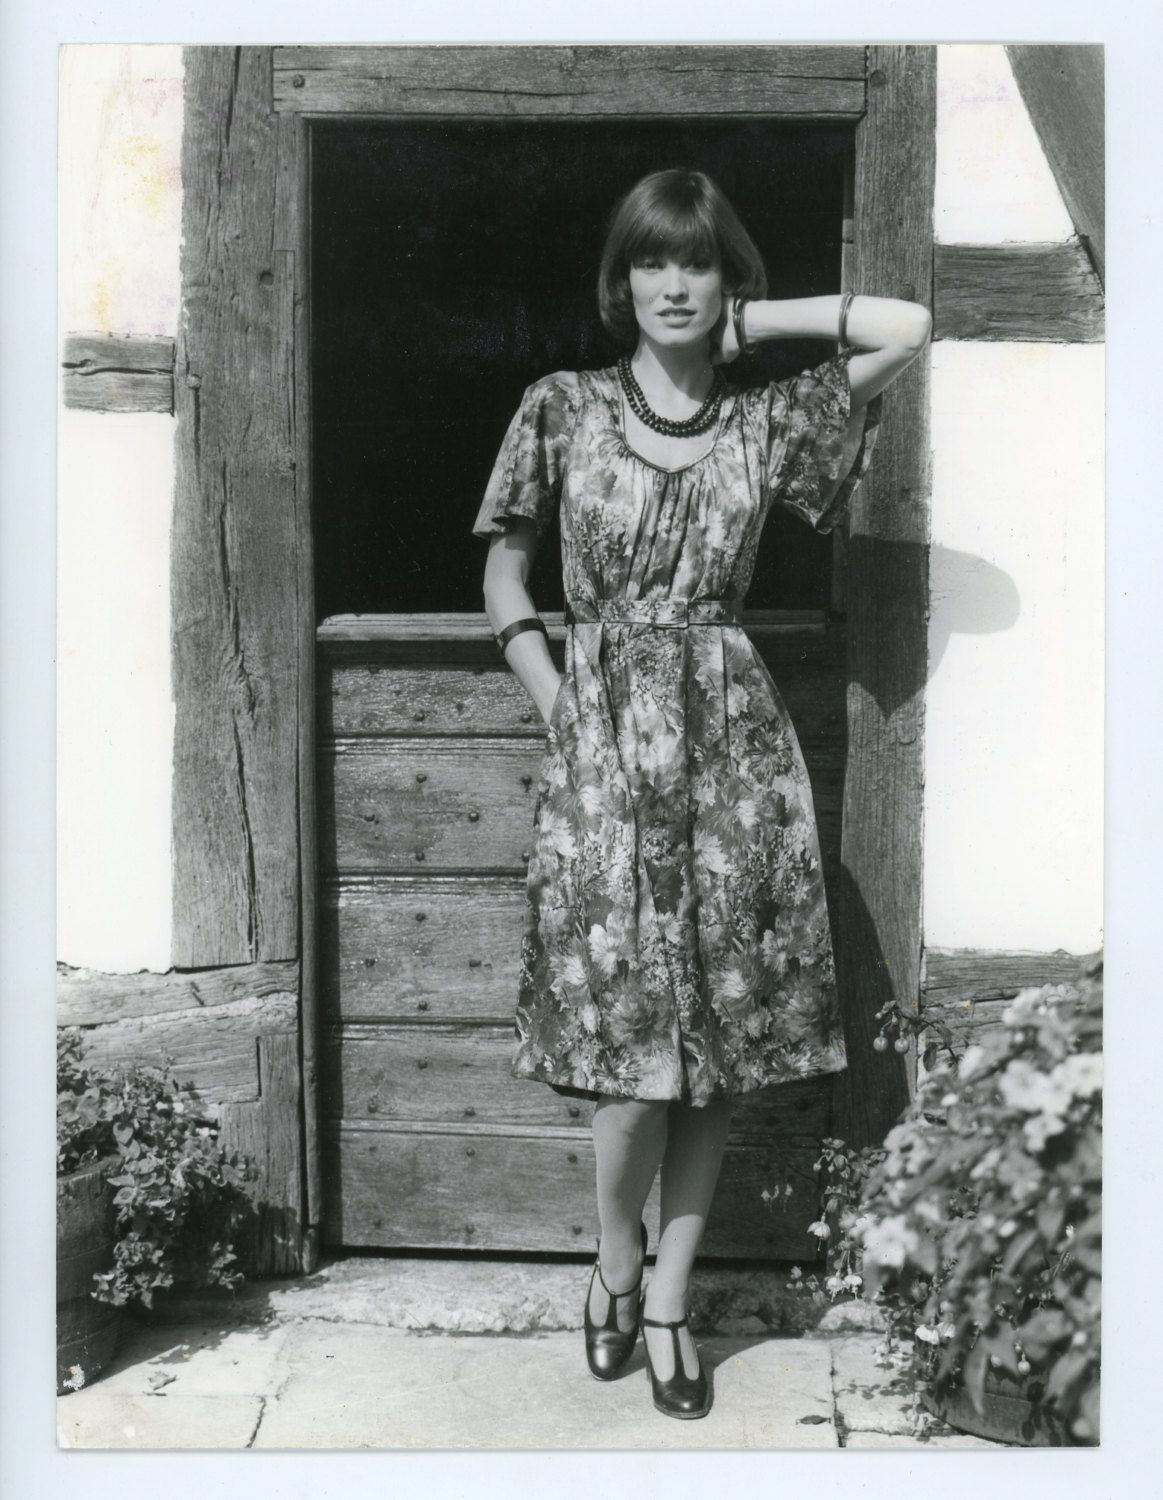 Vintage fashion photo - 1970s look- womens fashion- model - flower dress - b&w photo - sexy lady girl - fashion photography by GRAINSofBrussels on Etsy